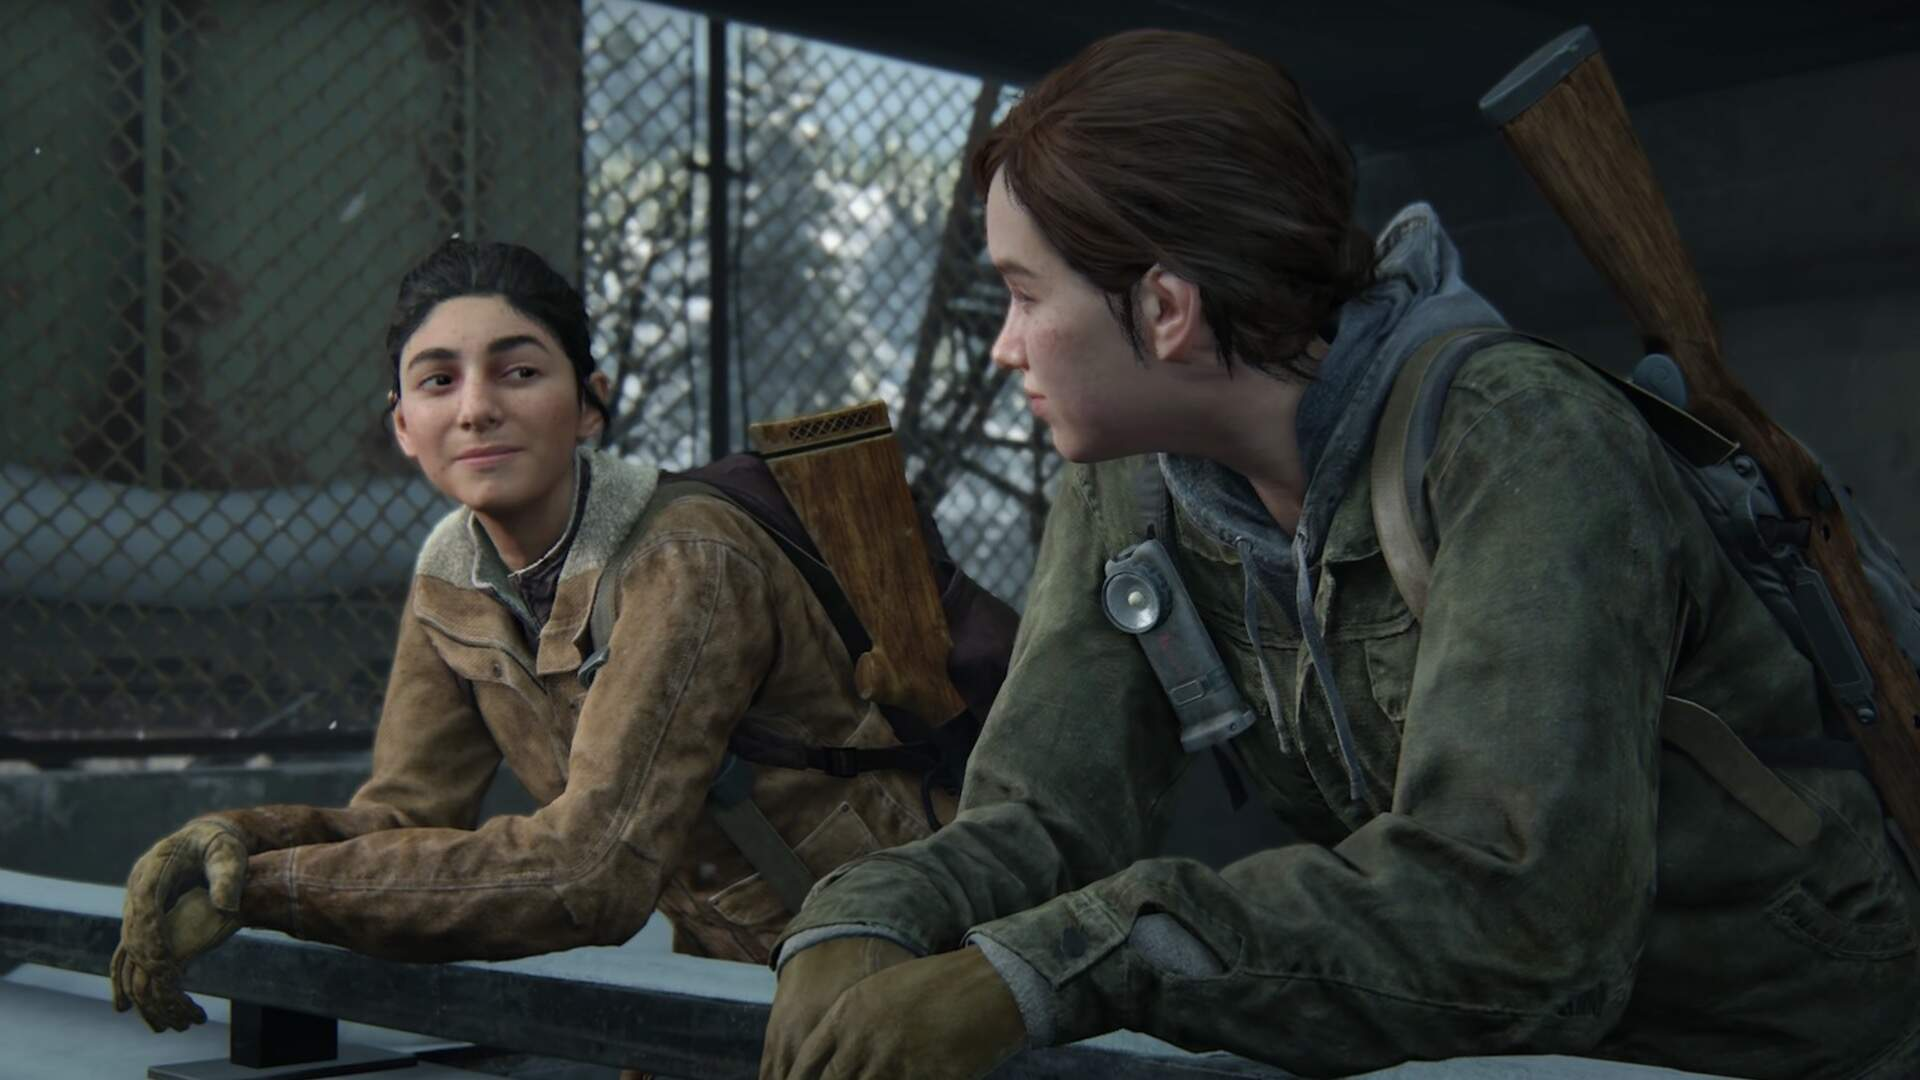 The Last of Us Part 2's Overly Limiting Embargo Only Hurts Critical Discourse